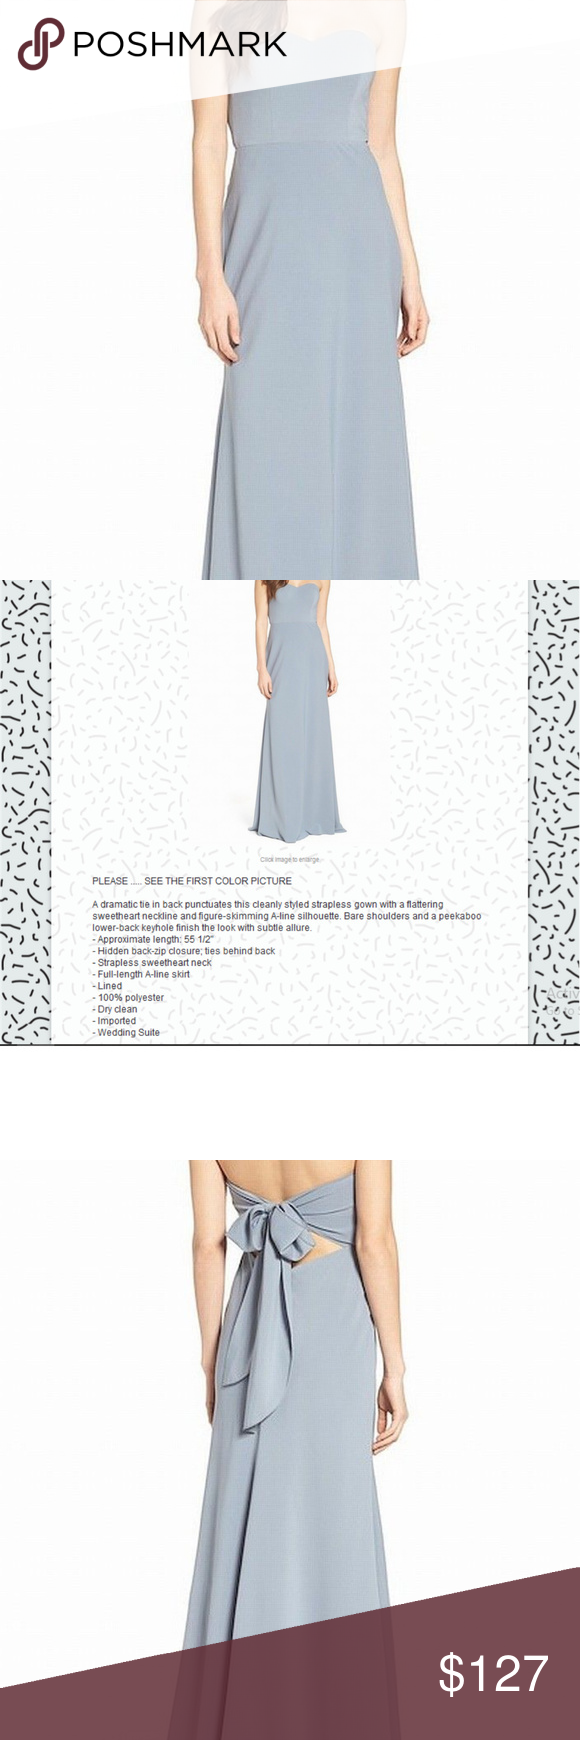 5fe0cf58343 Jenny Yoo Kylie Cut Out Tie Back Gown 2  155AT The dress is come tag ...